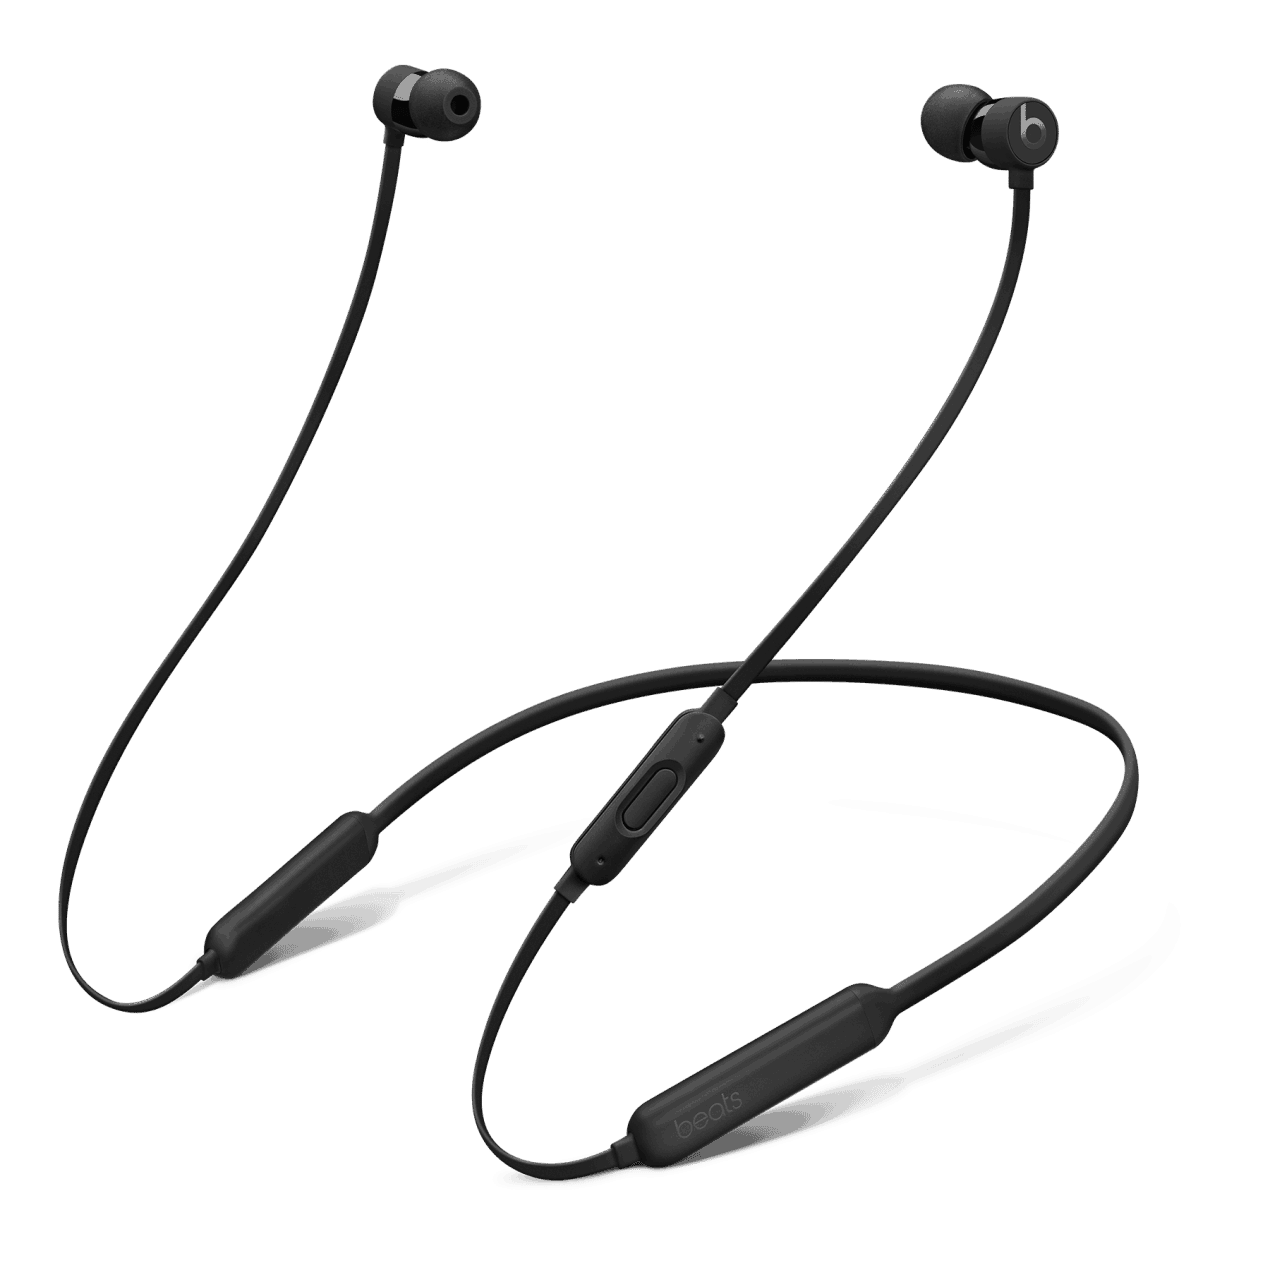 BeatsX By Dre Wireless Earphones Review